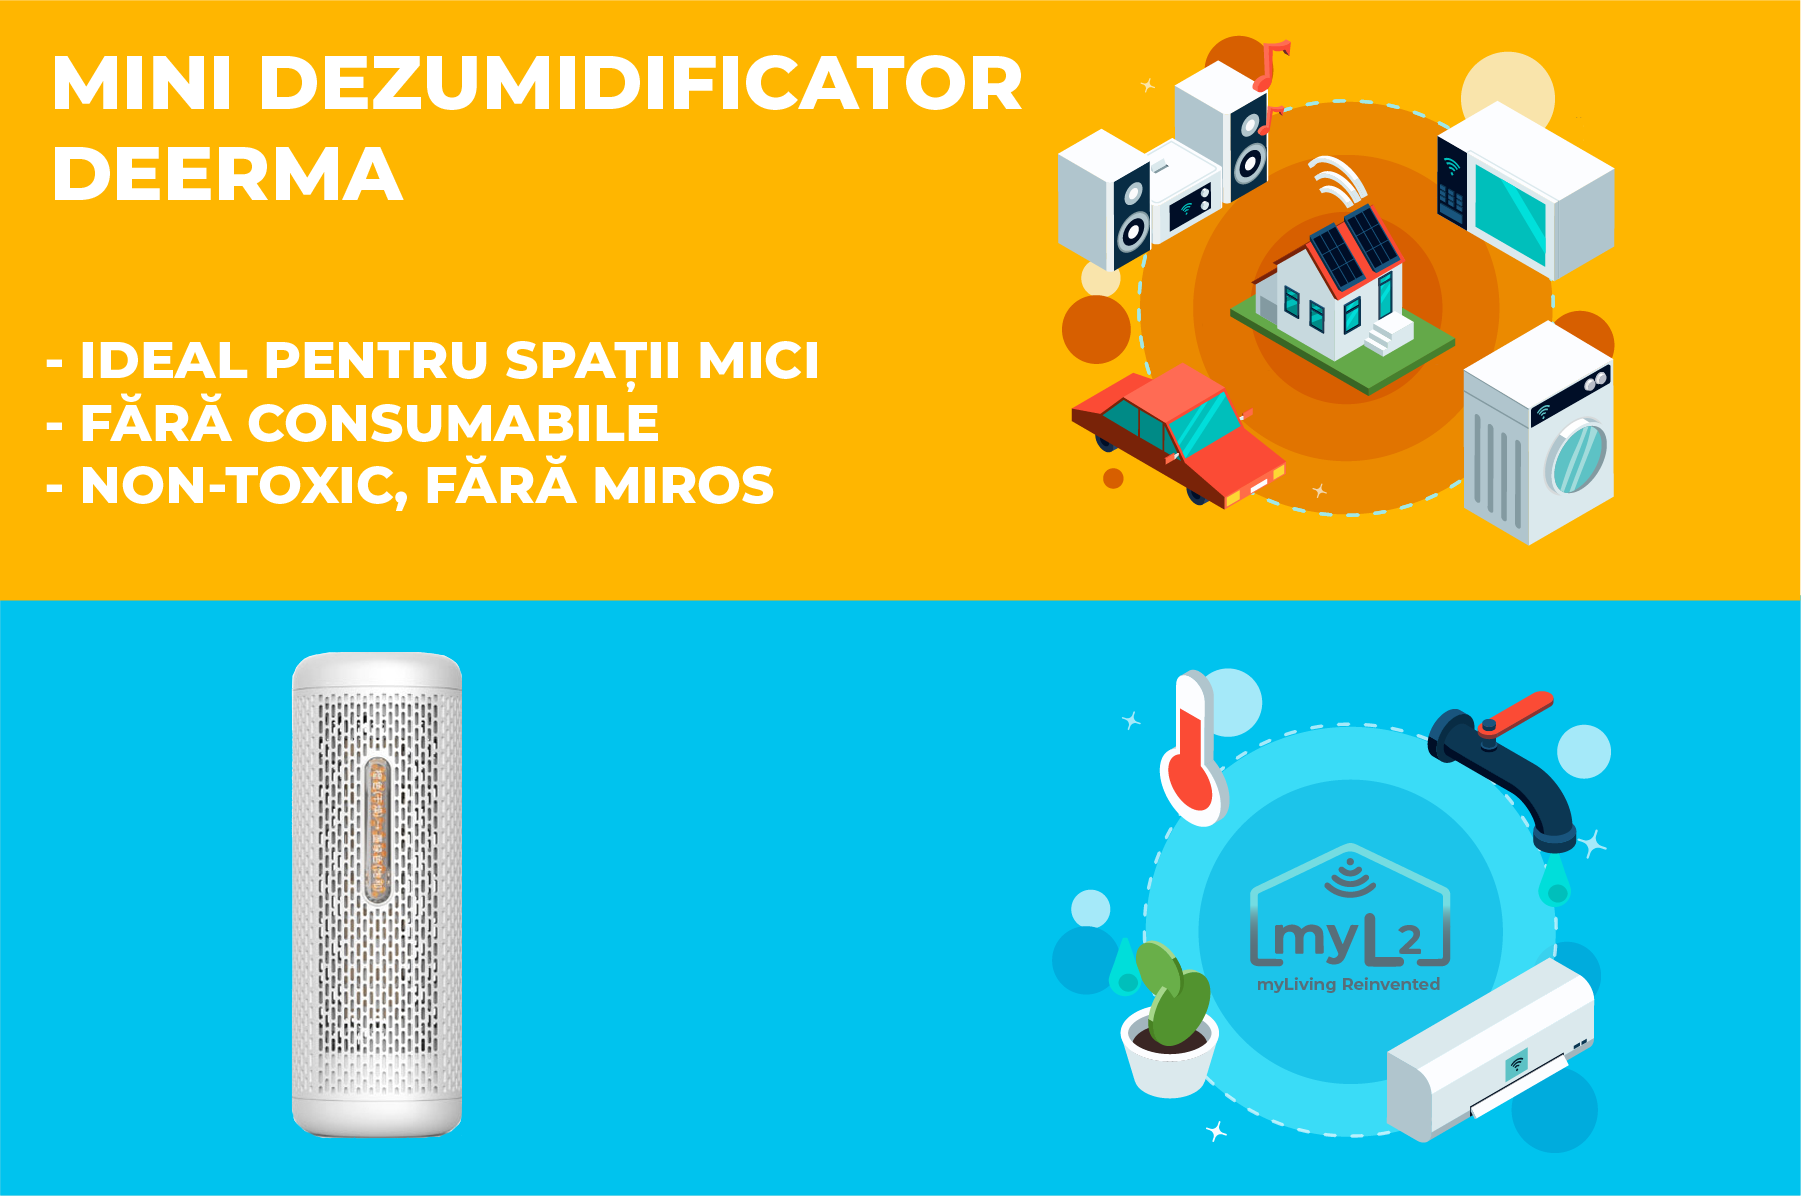 mini dezumidificator deerma xiaomi